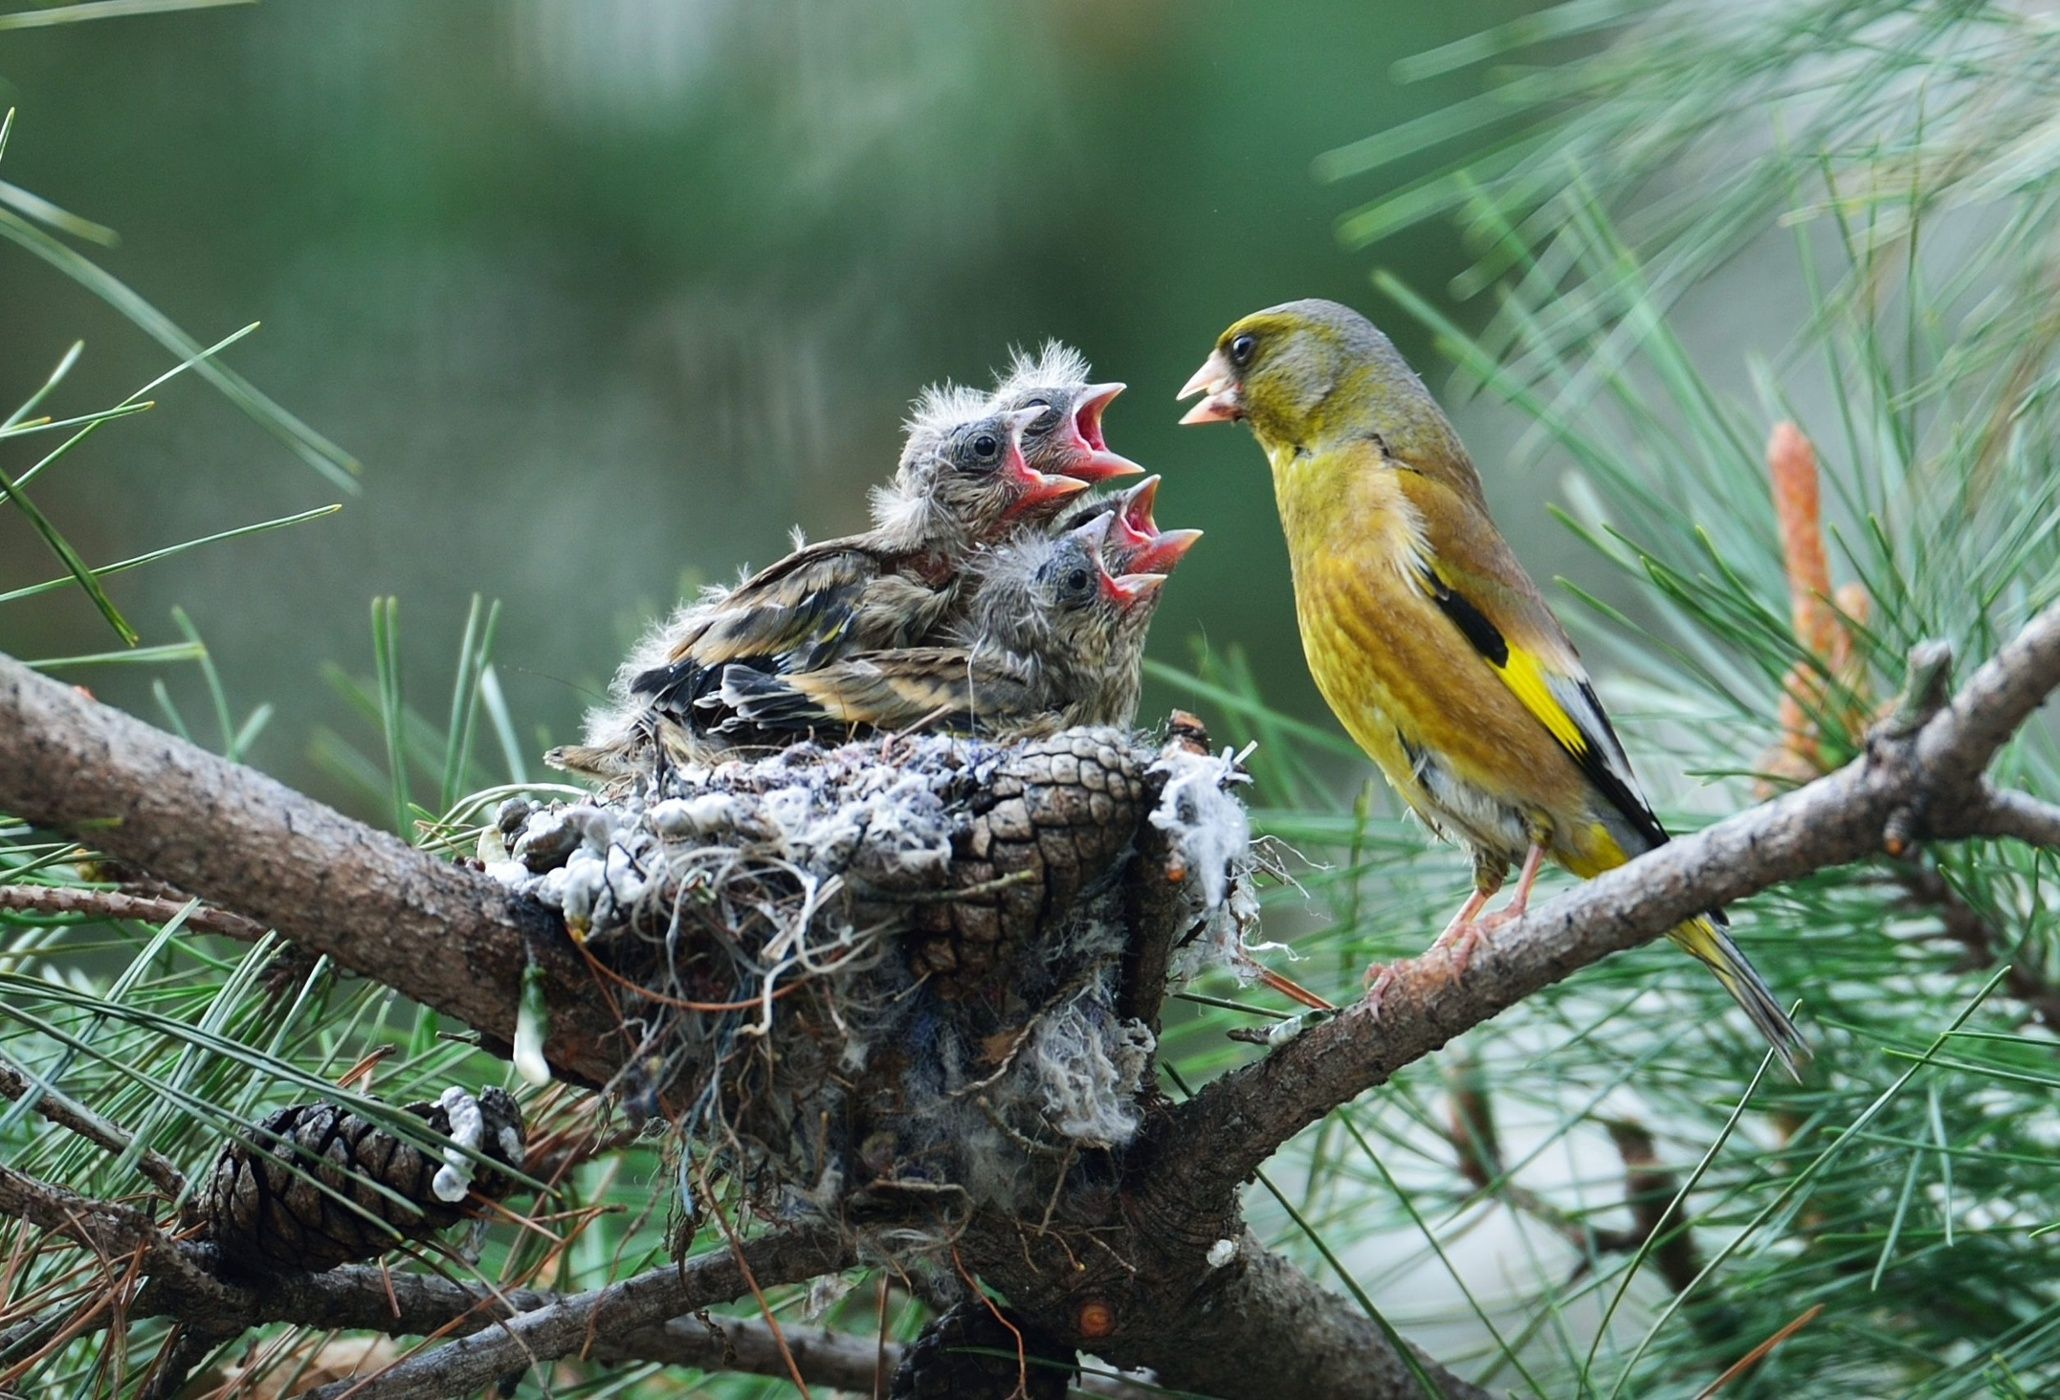 A goldfinch feeds its newly hatched chicks in their nest in Chungju, North Chungcheong province, South Korea.  Photograph: Kim Jae-sun/EPAThe week in wildlife – in pictures